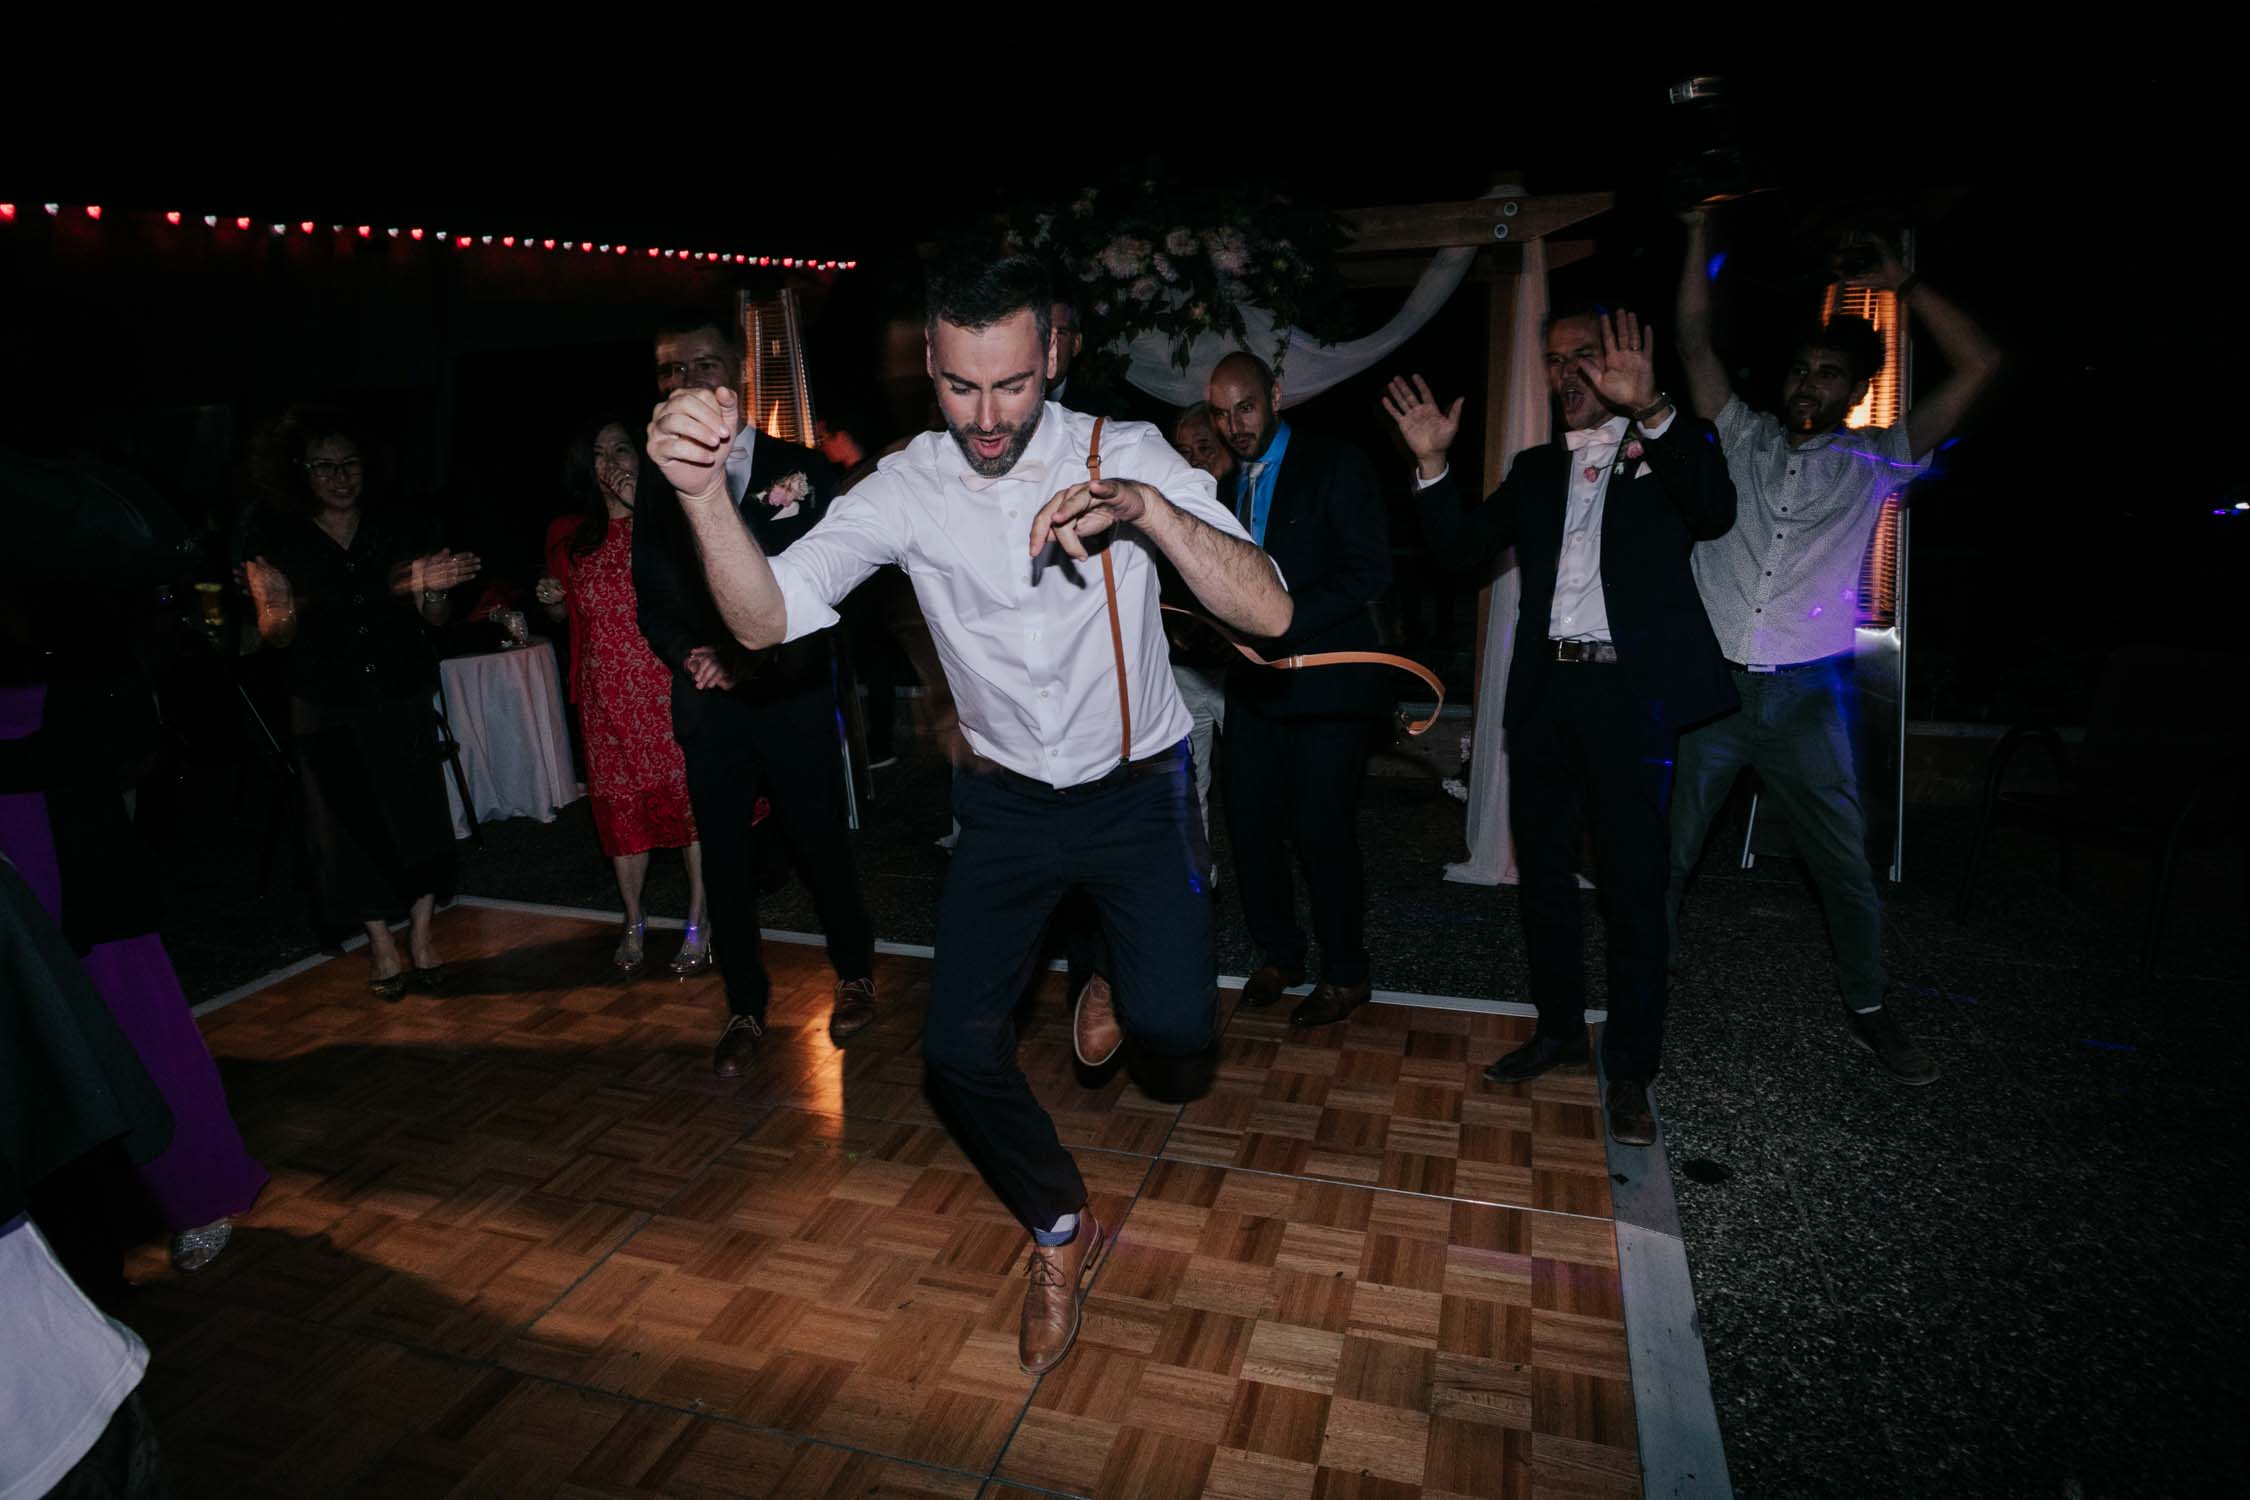 Classic Epic Funny Wedding Dancing Photos